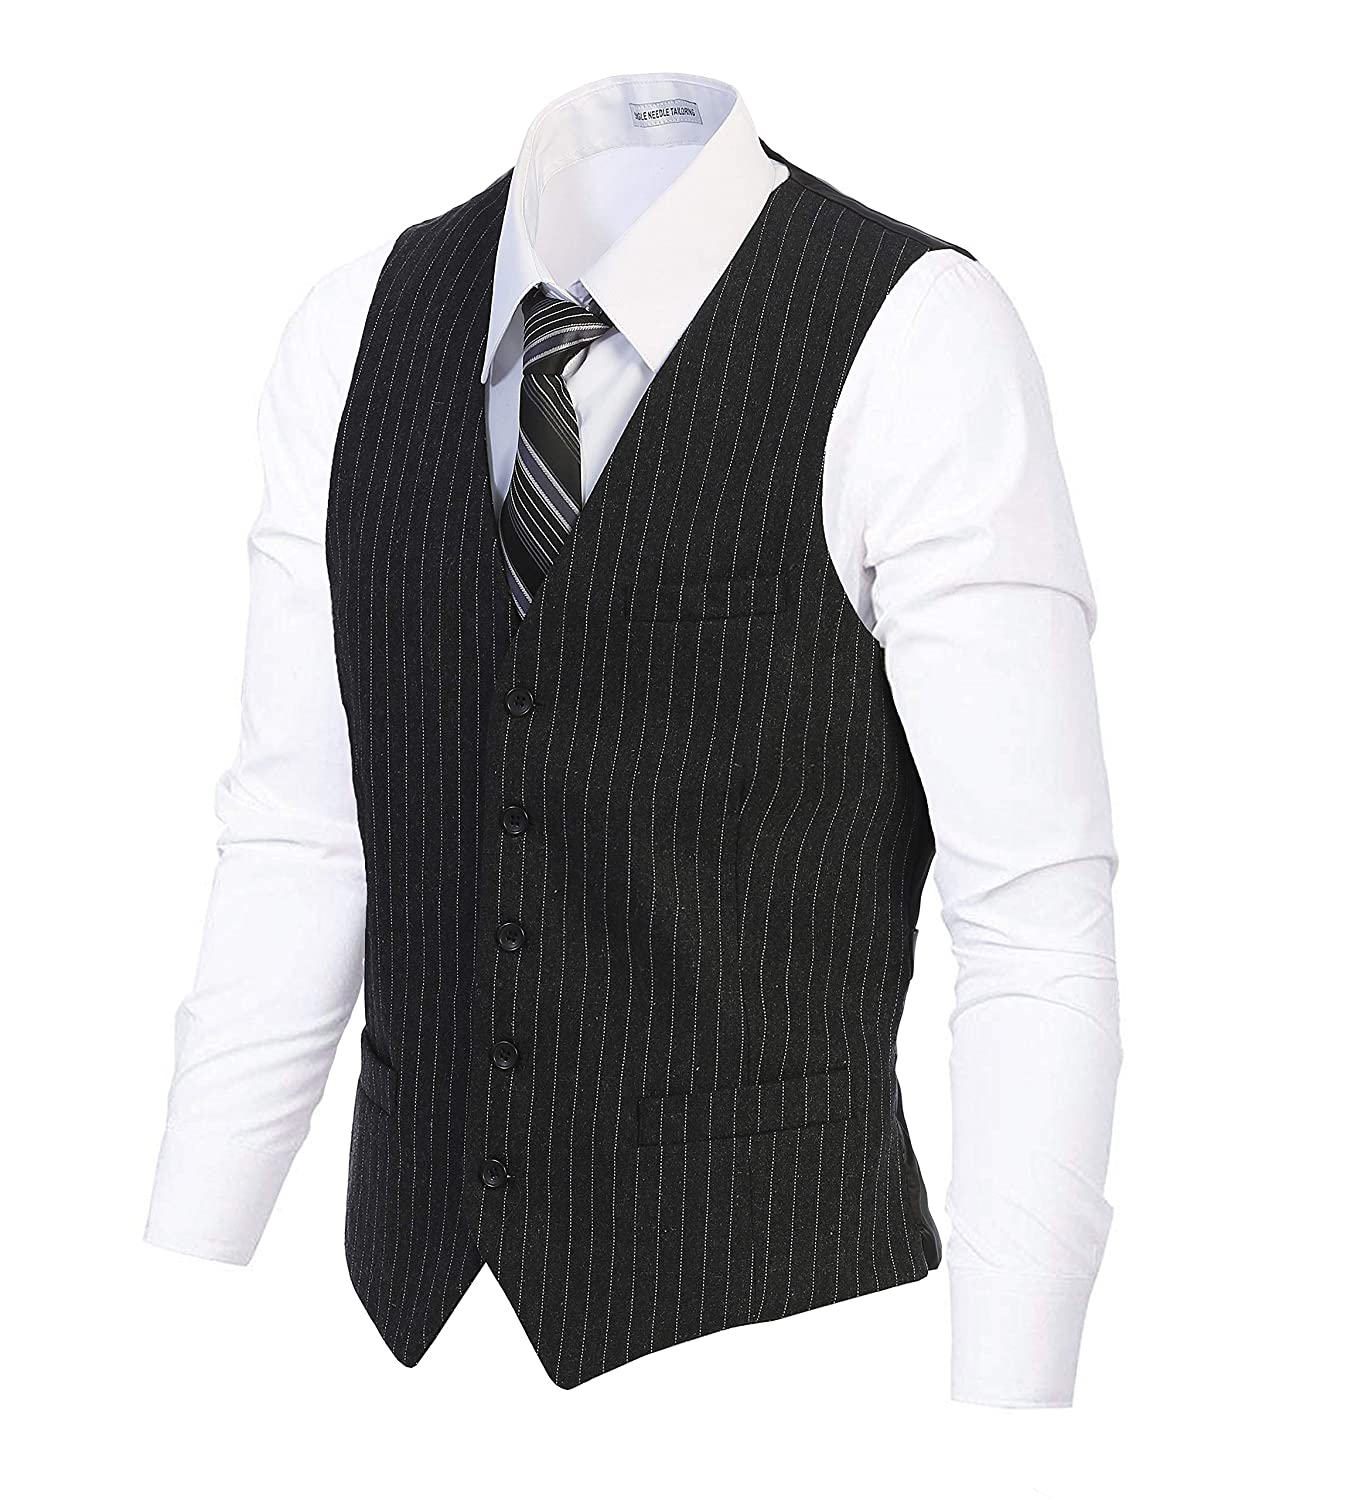 1920s Style Mens Vests Gioberti Mens 5 Button Formal Wool Blend Tweed Pin Stripe Vest $29.99 AT vintagedancer.com